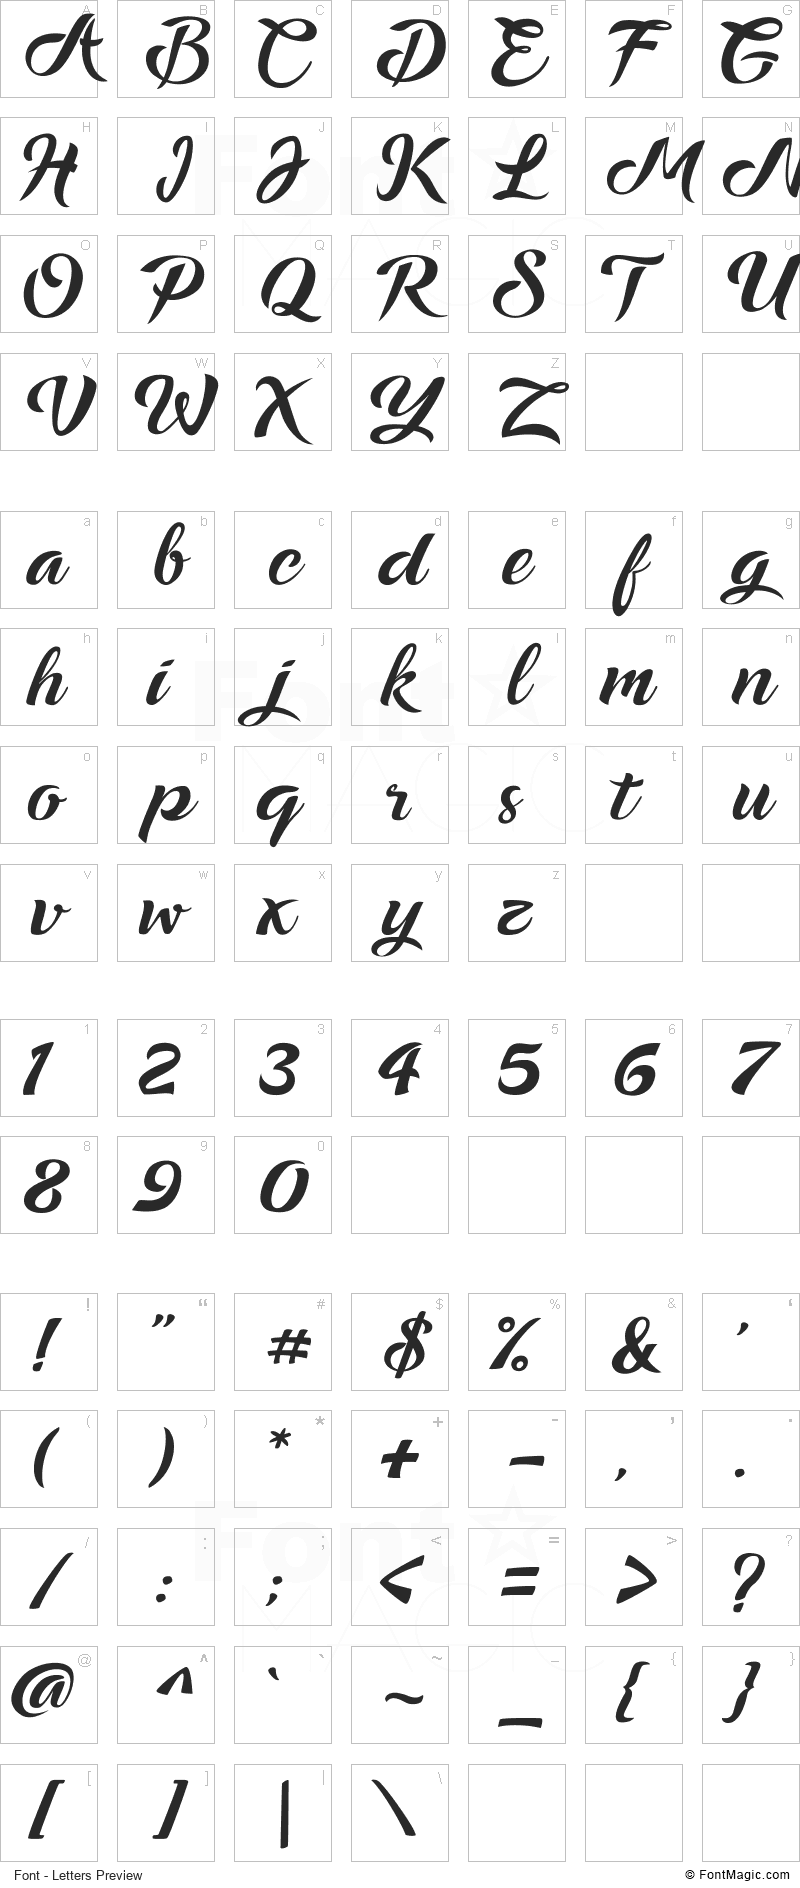 Ampera Font - All Latters Preview Chart